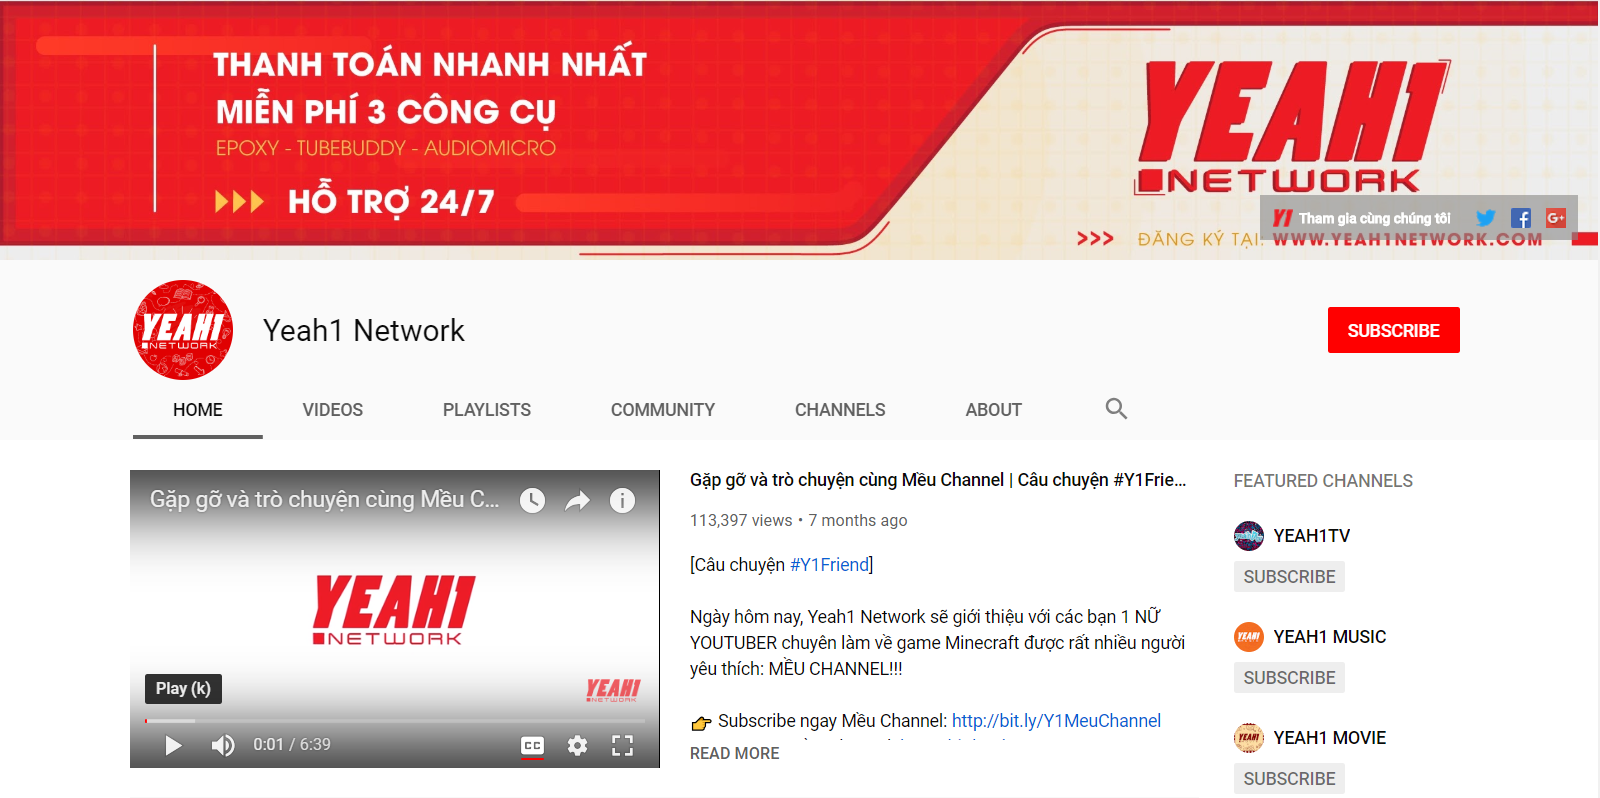 A screen grab of the homepage of a YouTube channel run by Yeah1 Network.